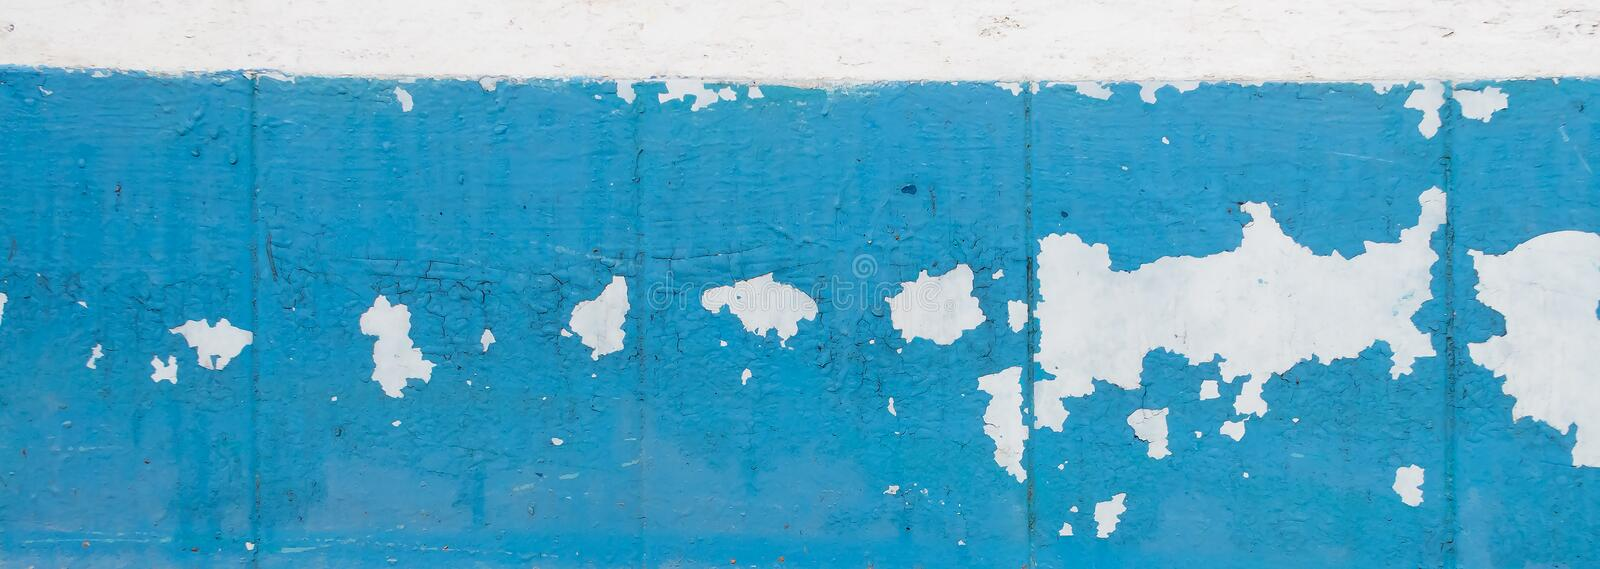 Wall with old peeling blue paint. Texture of old peeling paint, vintage graffiti background, it`s time to make repairs, cracked paint texture.  Clipart royalty free stock images